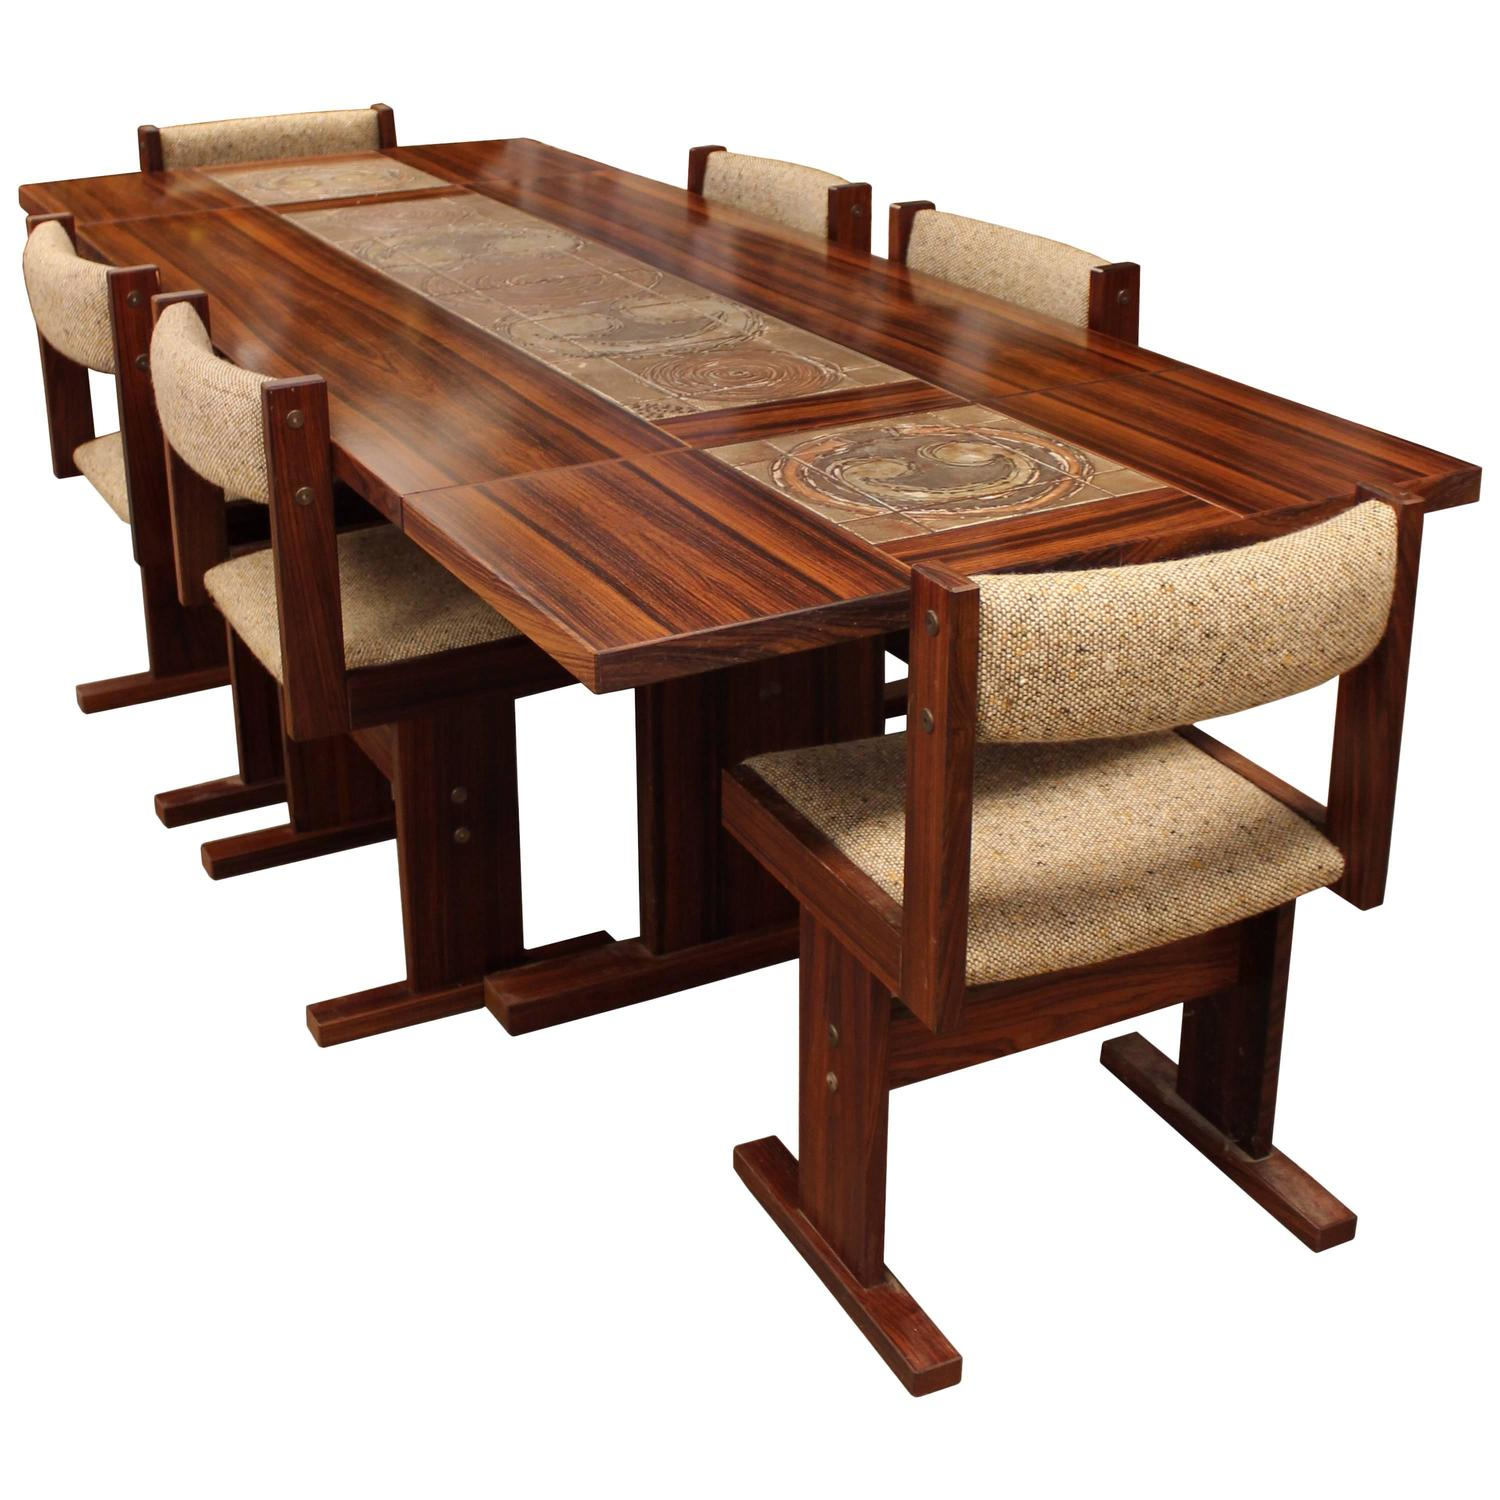 Rosewood Dining Room Set: Danish Modern Rosewood Ox Art Dining Room Set With Six